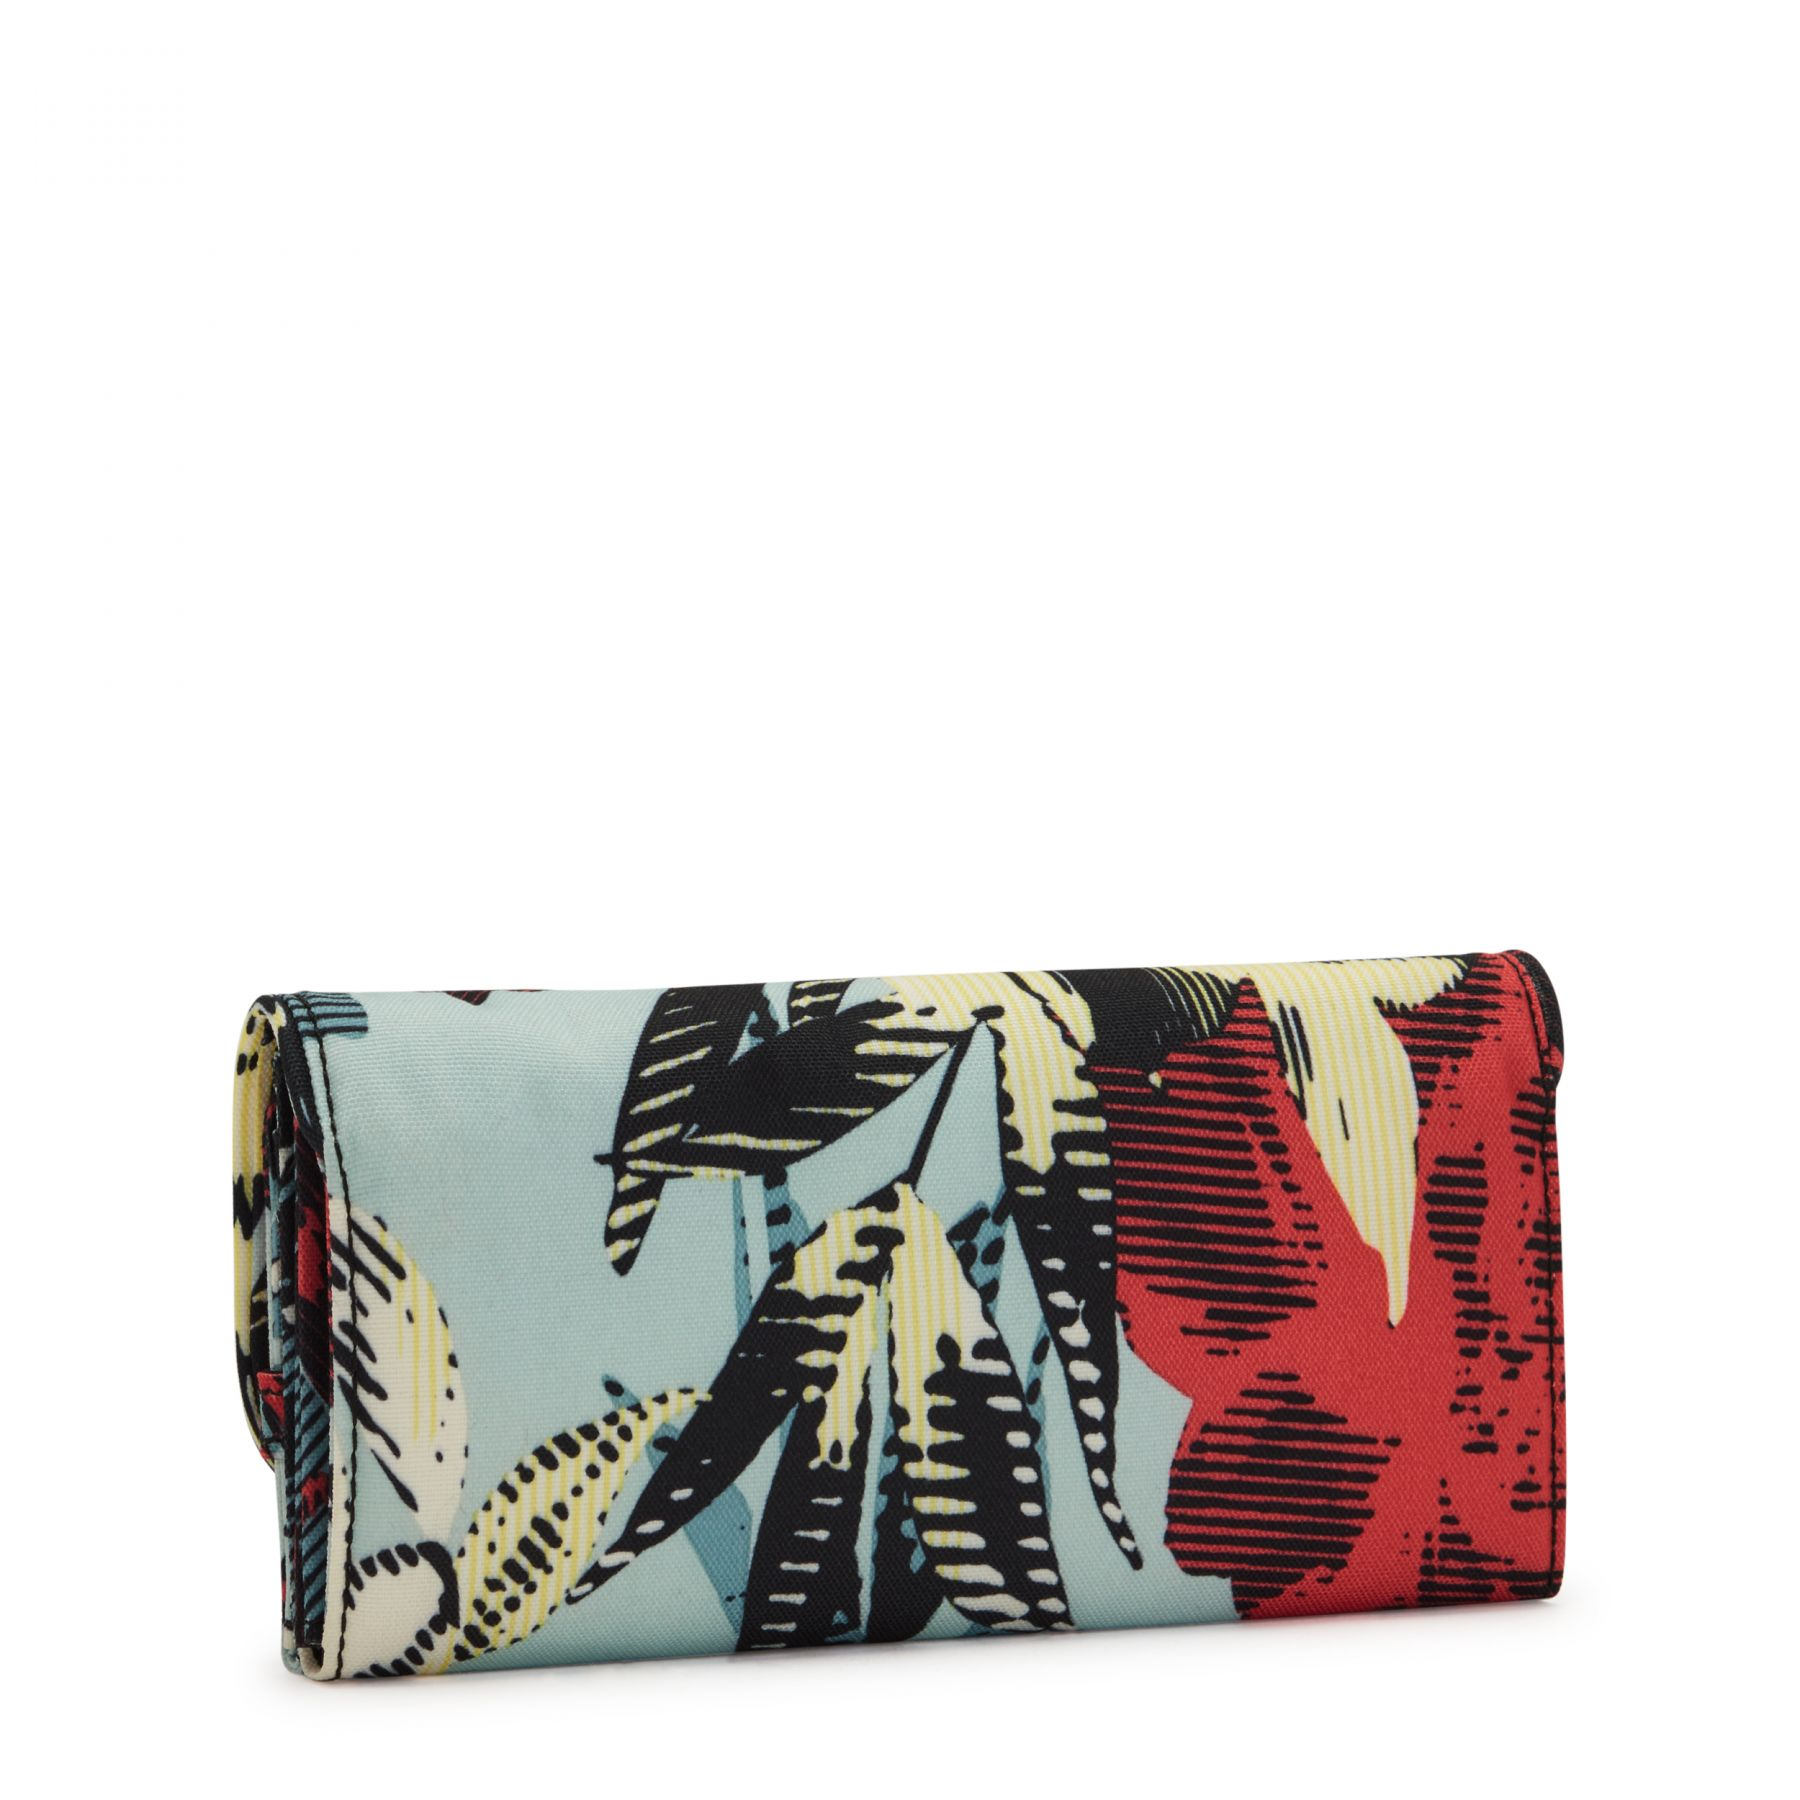 MONEY LAND ACCESSORIES by Kipling - Back view